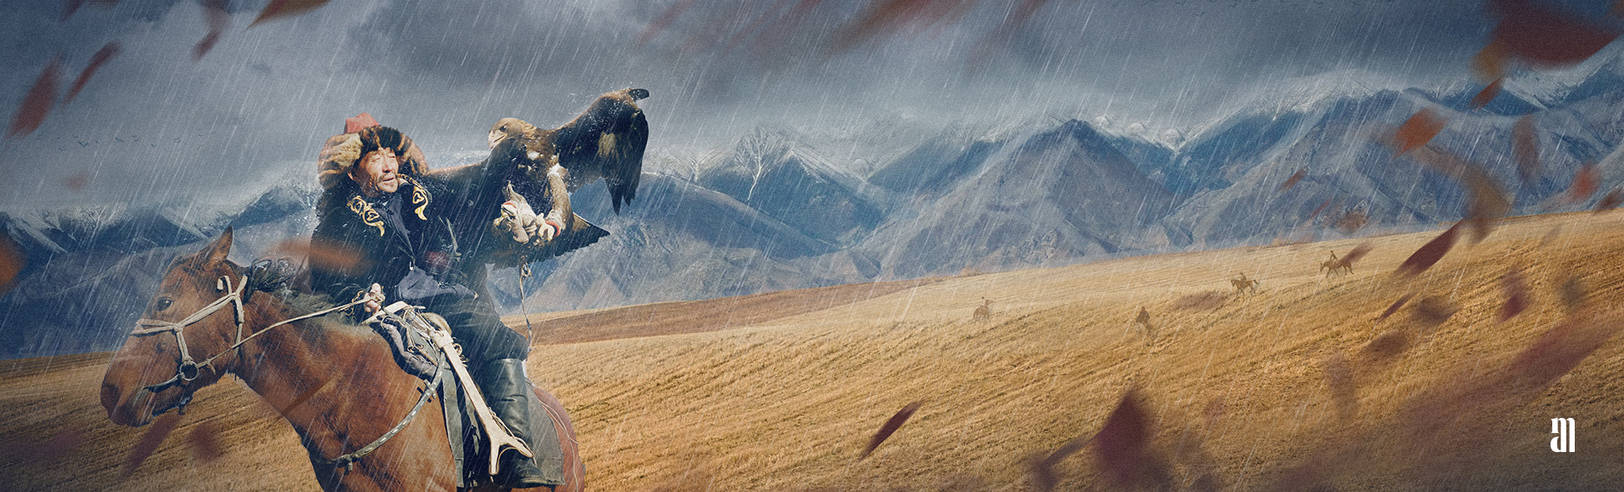 Wind on the Steppe by Gejda